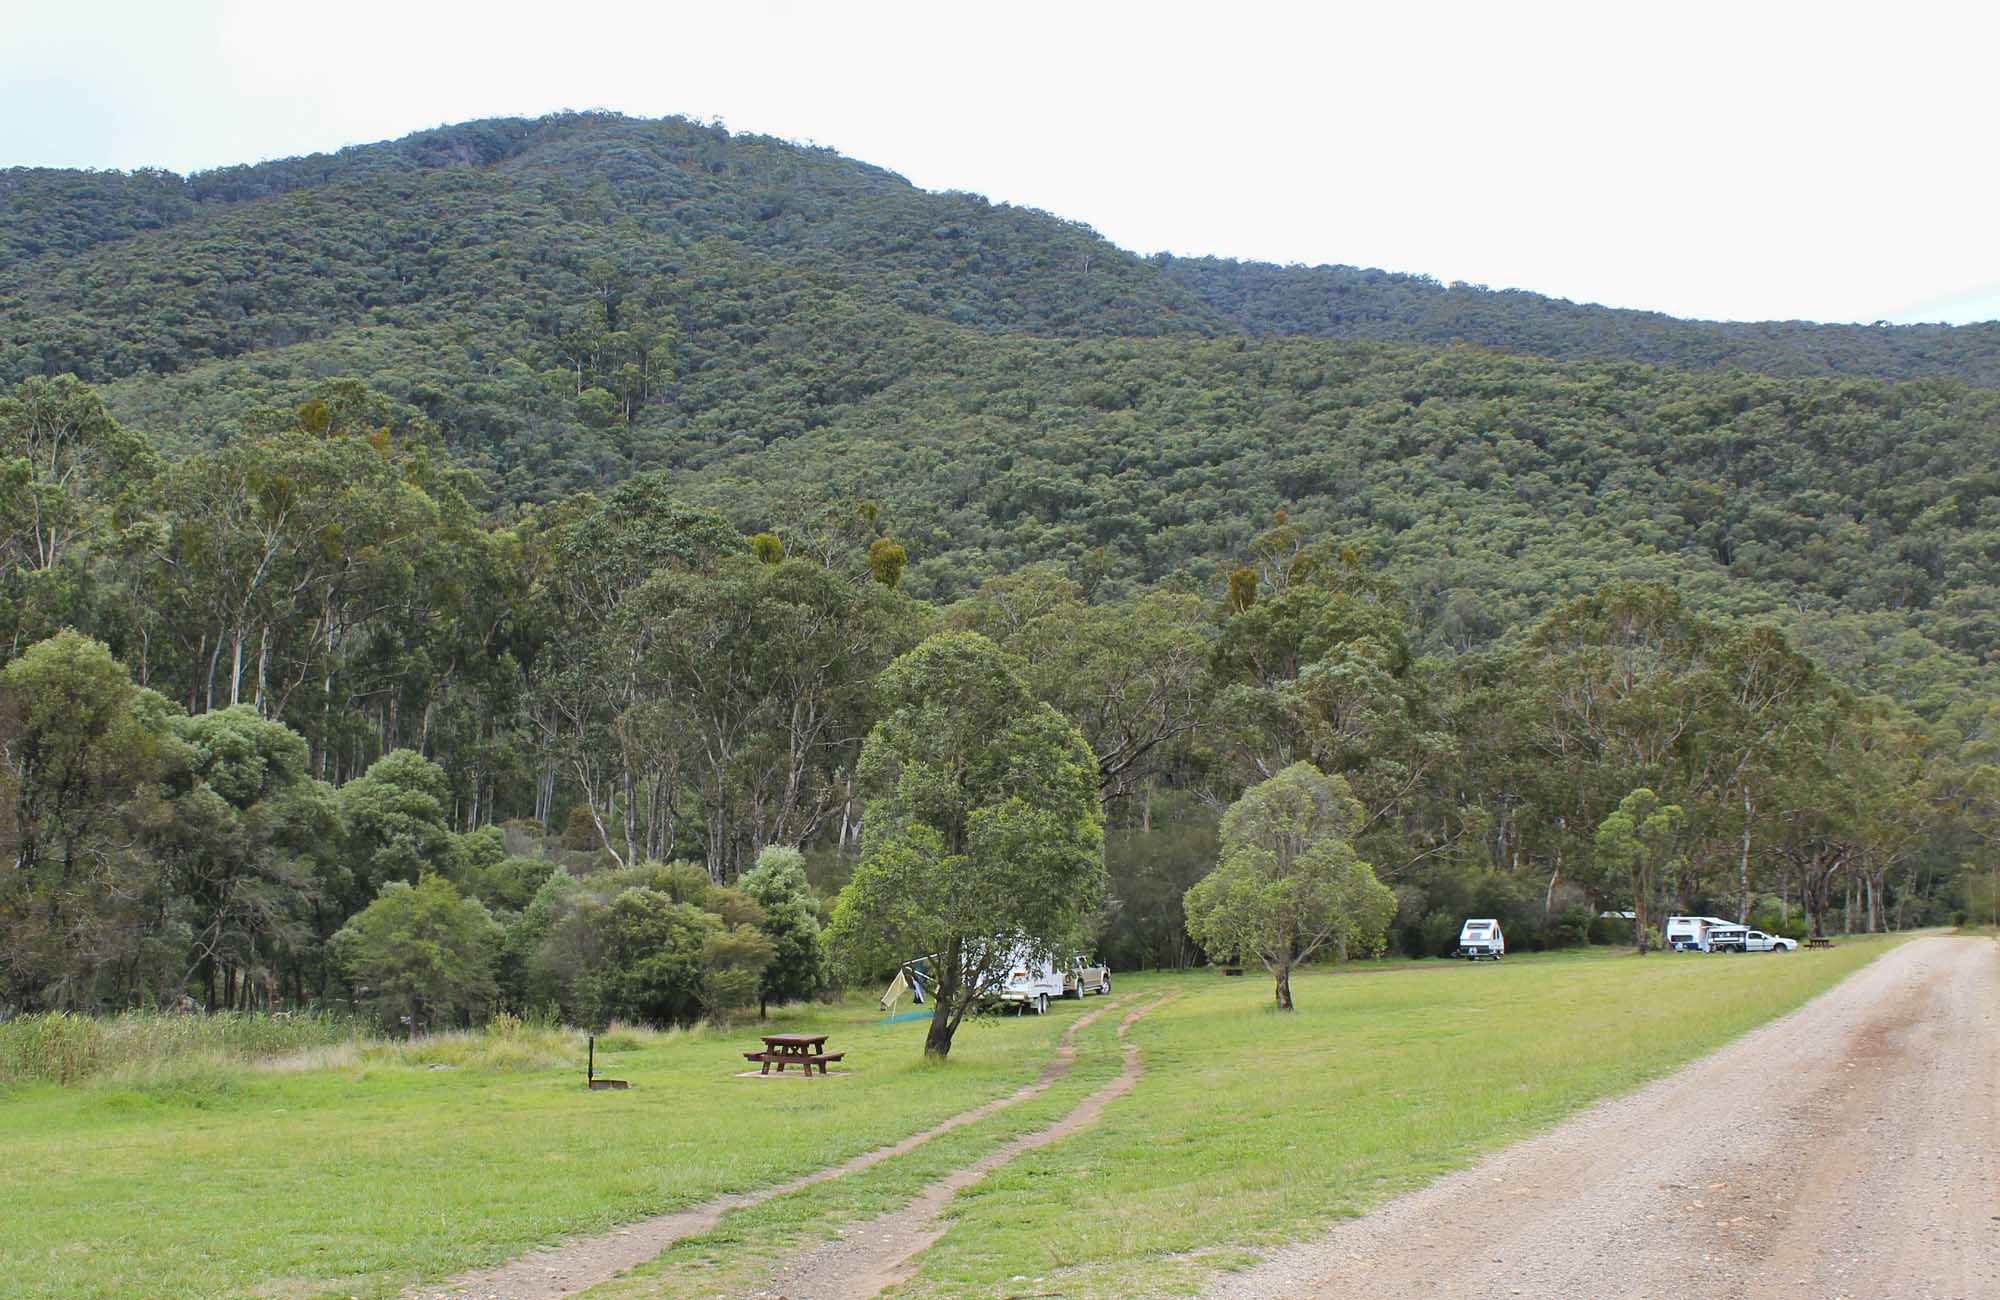 Jounama Creek campground, Kosciuszko National Park. Photo: Clint & Todd Wright/NSW Government